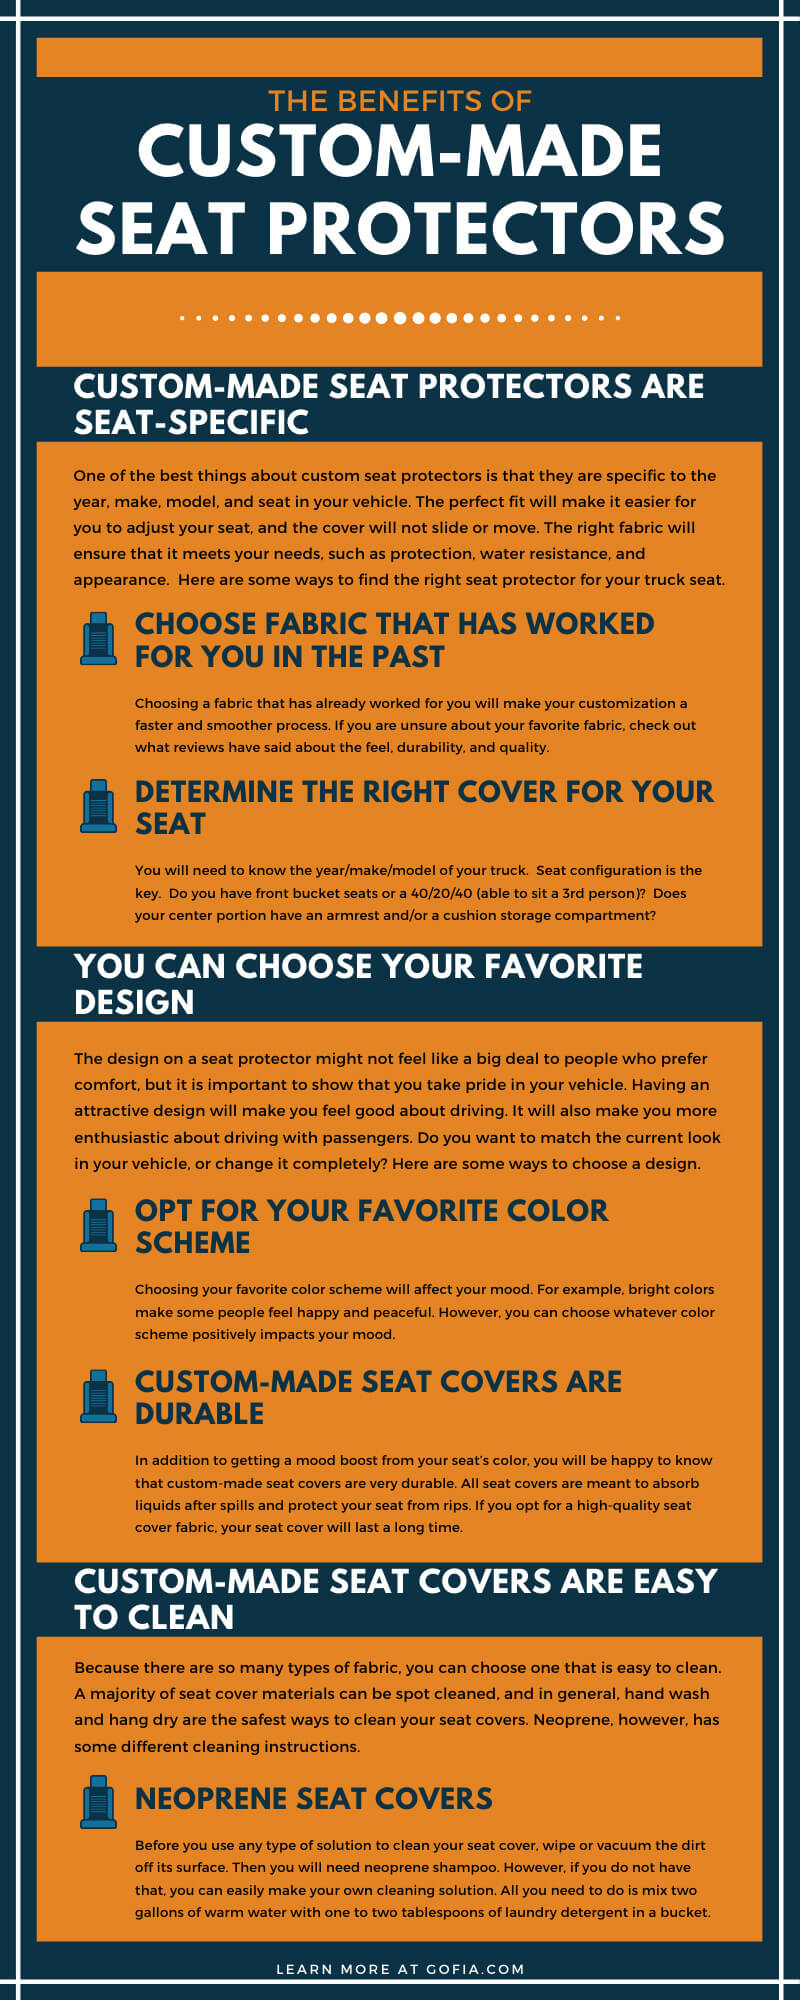 The Benefits of Custom-Made Seat Protectors